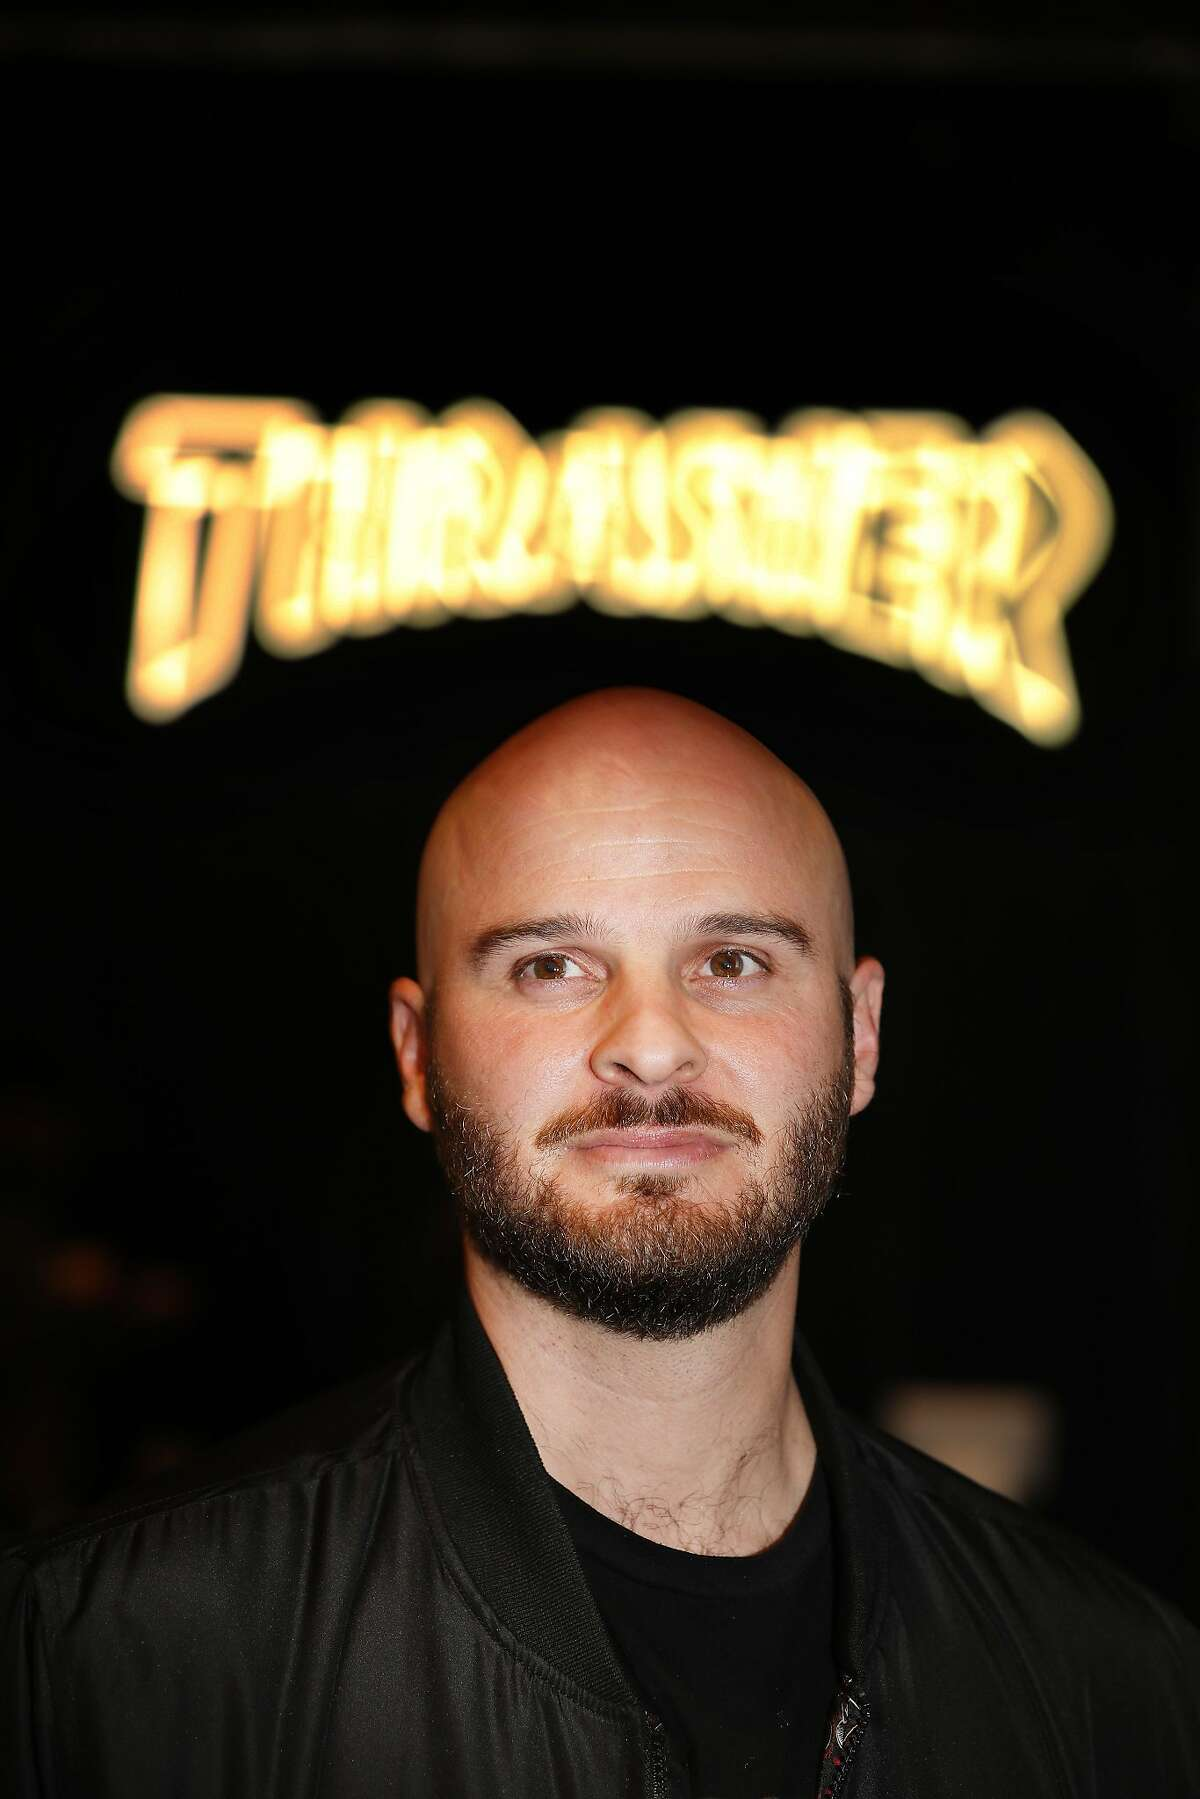 Tony Vitello, owner, stands for a portrait at the Thrasher flagship store at 66 6th Street on Friday, November 16, 2018 in San Francisco, Calif.